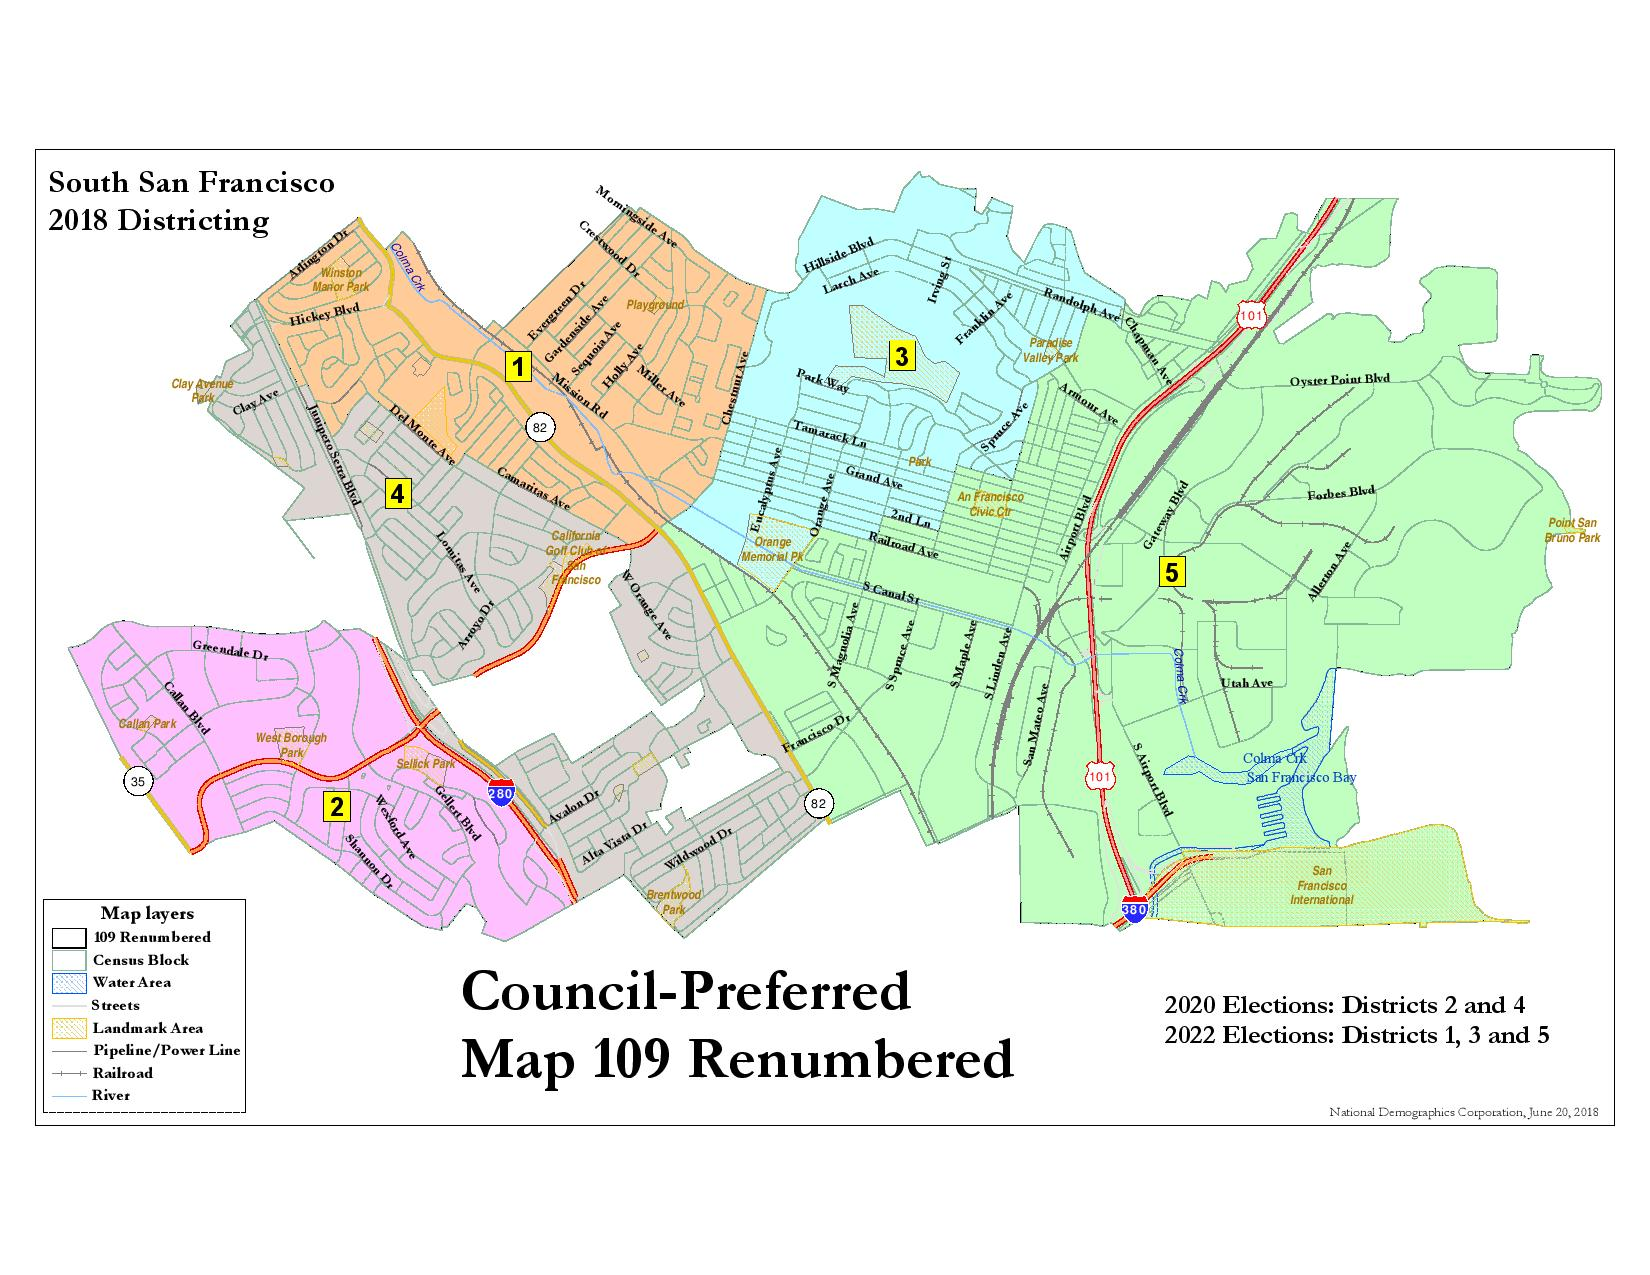 Districts Of San Francisco Map.South San Francisco Election District Map Approved By City Council